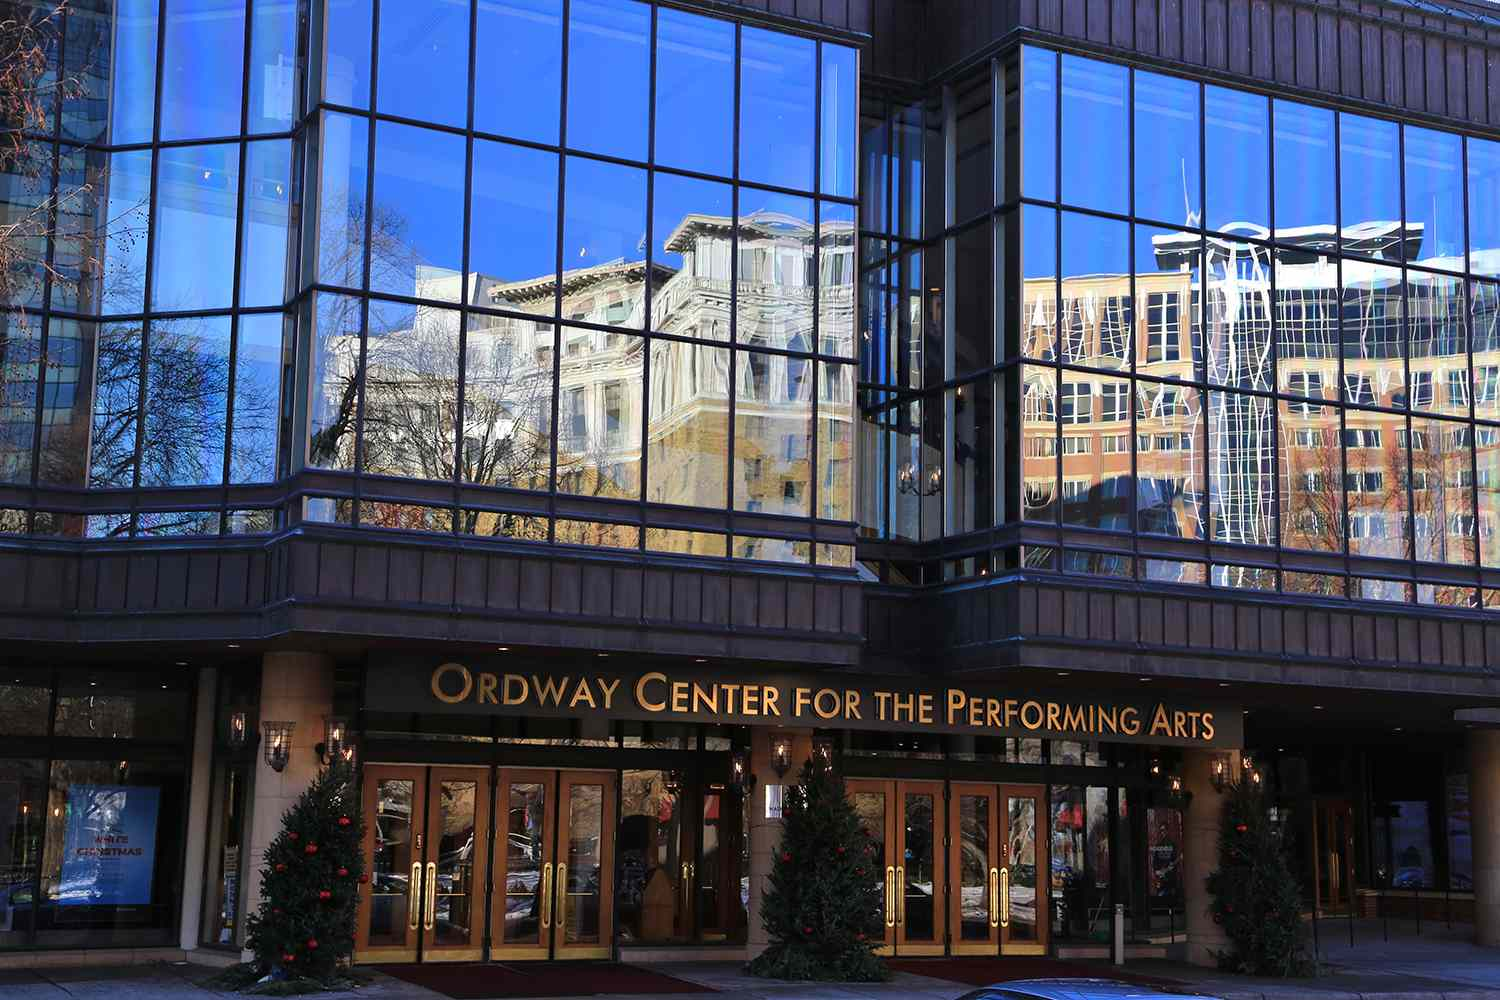 The Ordway Center for the Performing Arts, St. Paul, Minnesota, USA